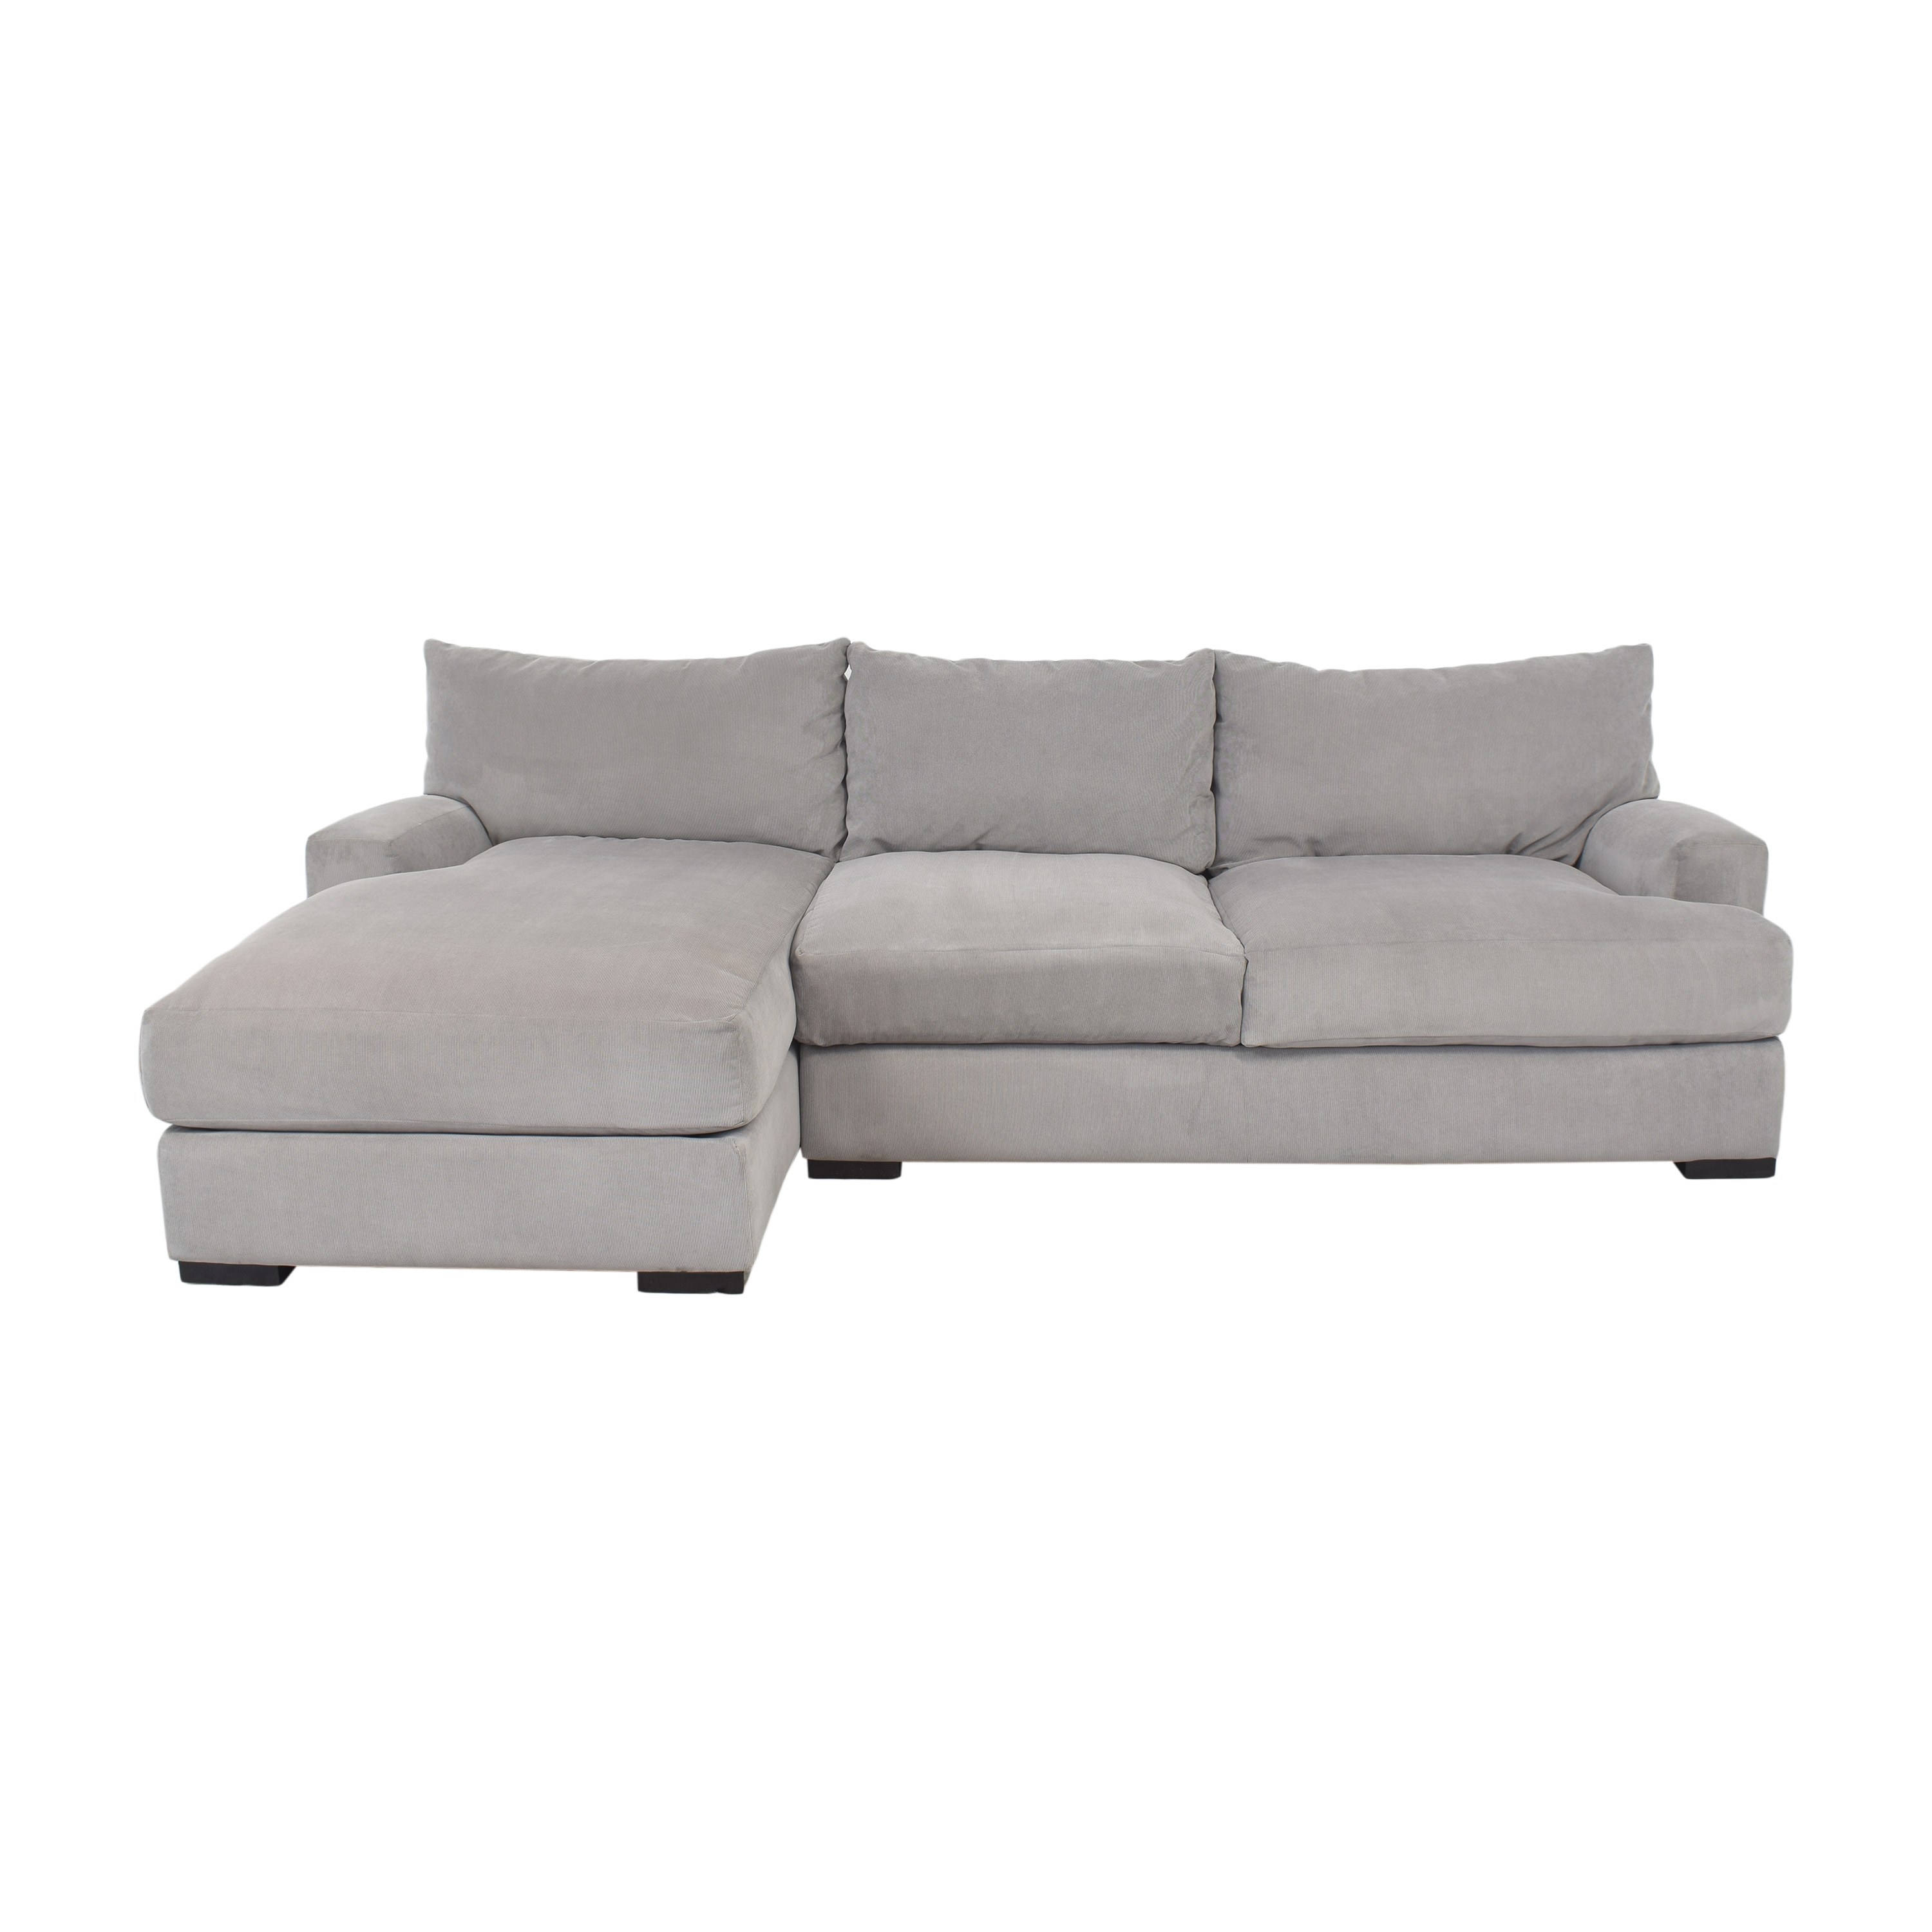 Macy's Macy's Rhyder Chaise Sectional Sofa ct